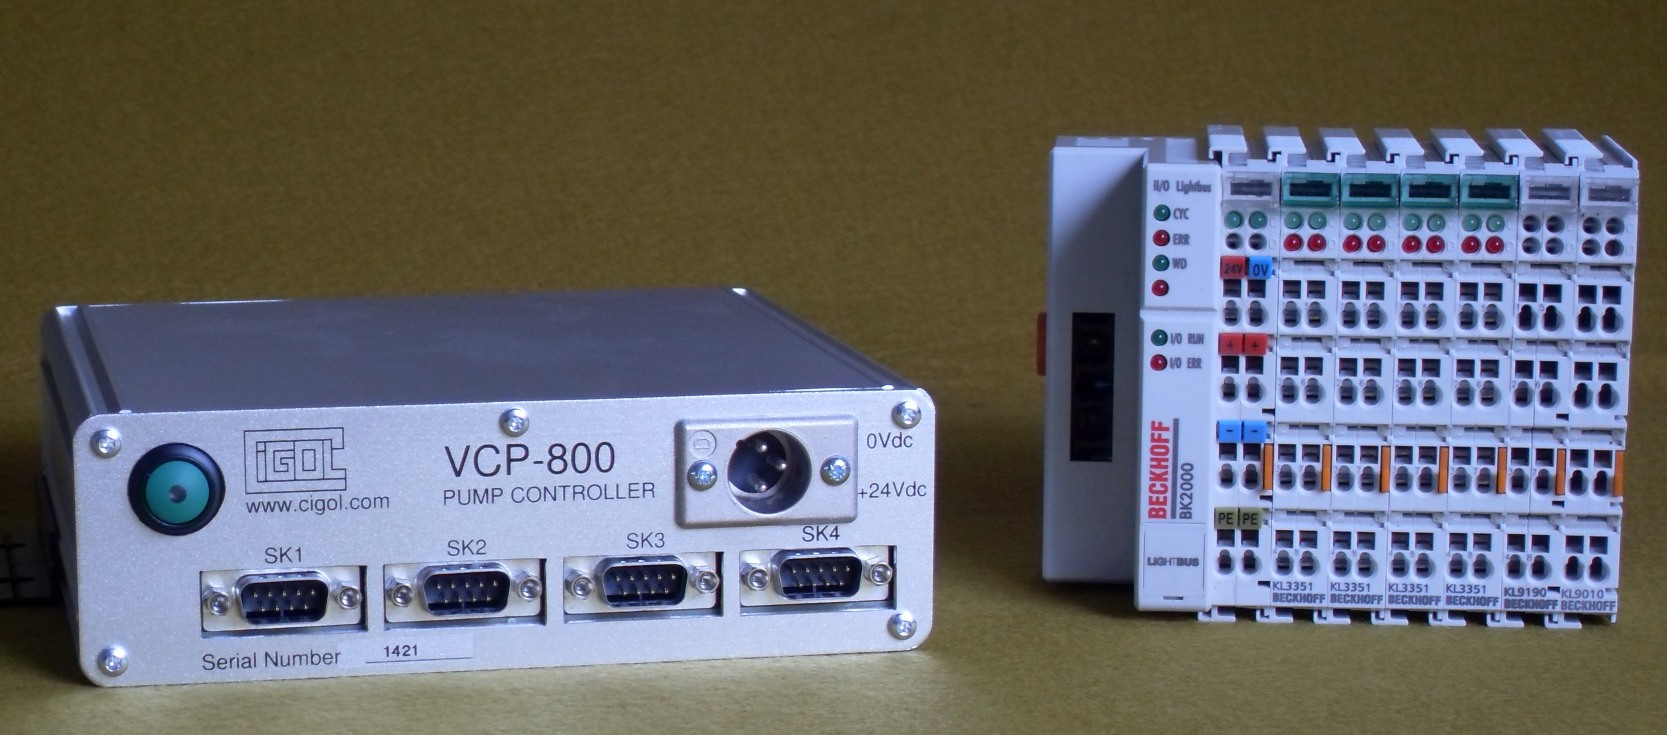 Photograph of VCP-800 and Beckhoff i/o